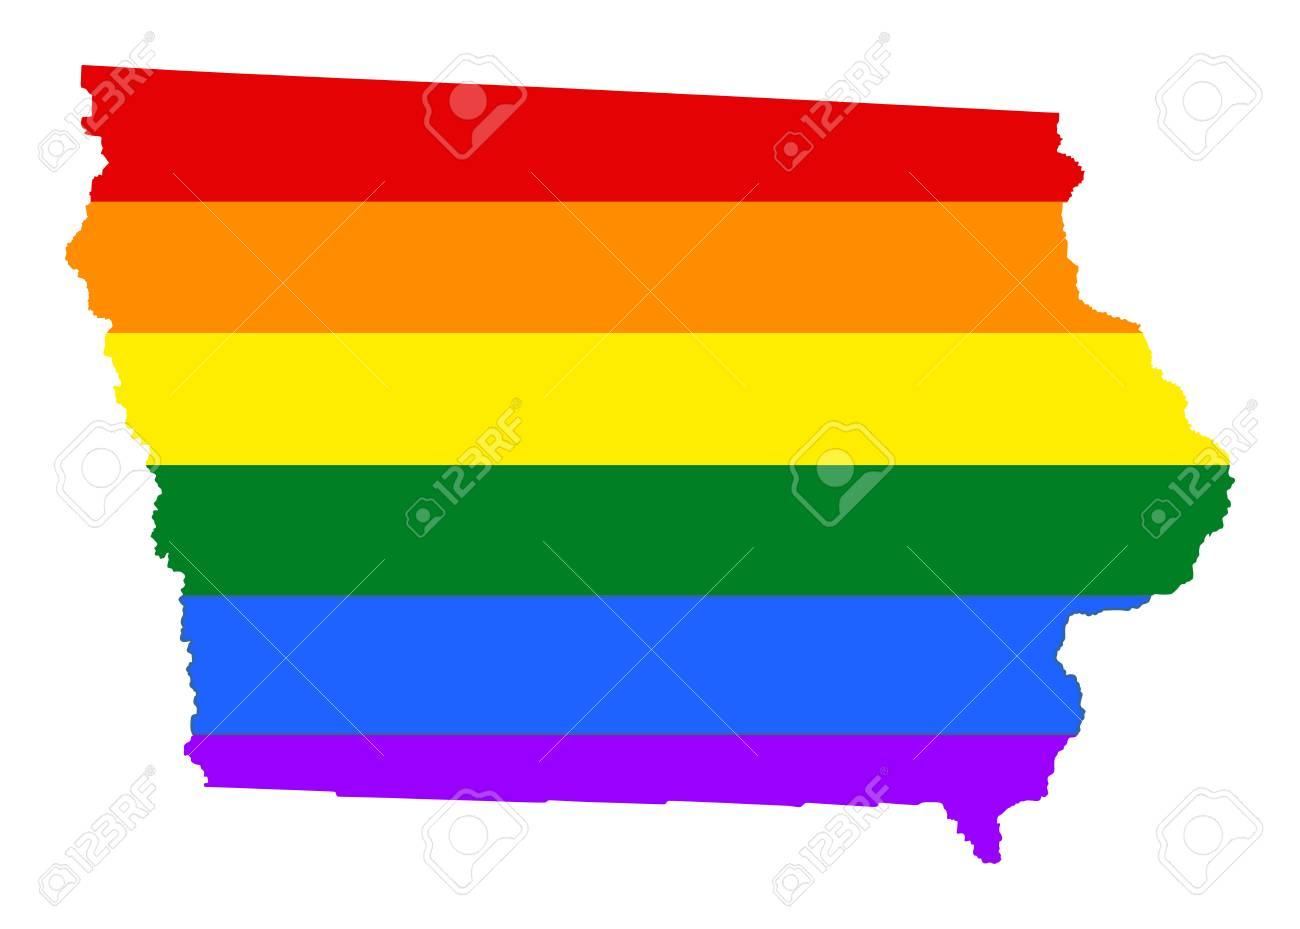 State Map Of United States Of America.Iowa Pride Gay Map With Rainbow Flag Colors United States Of